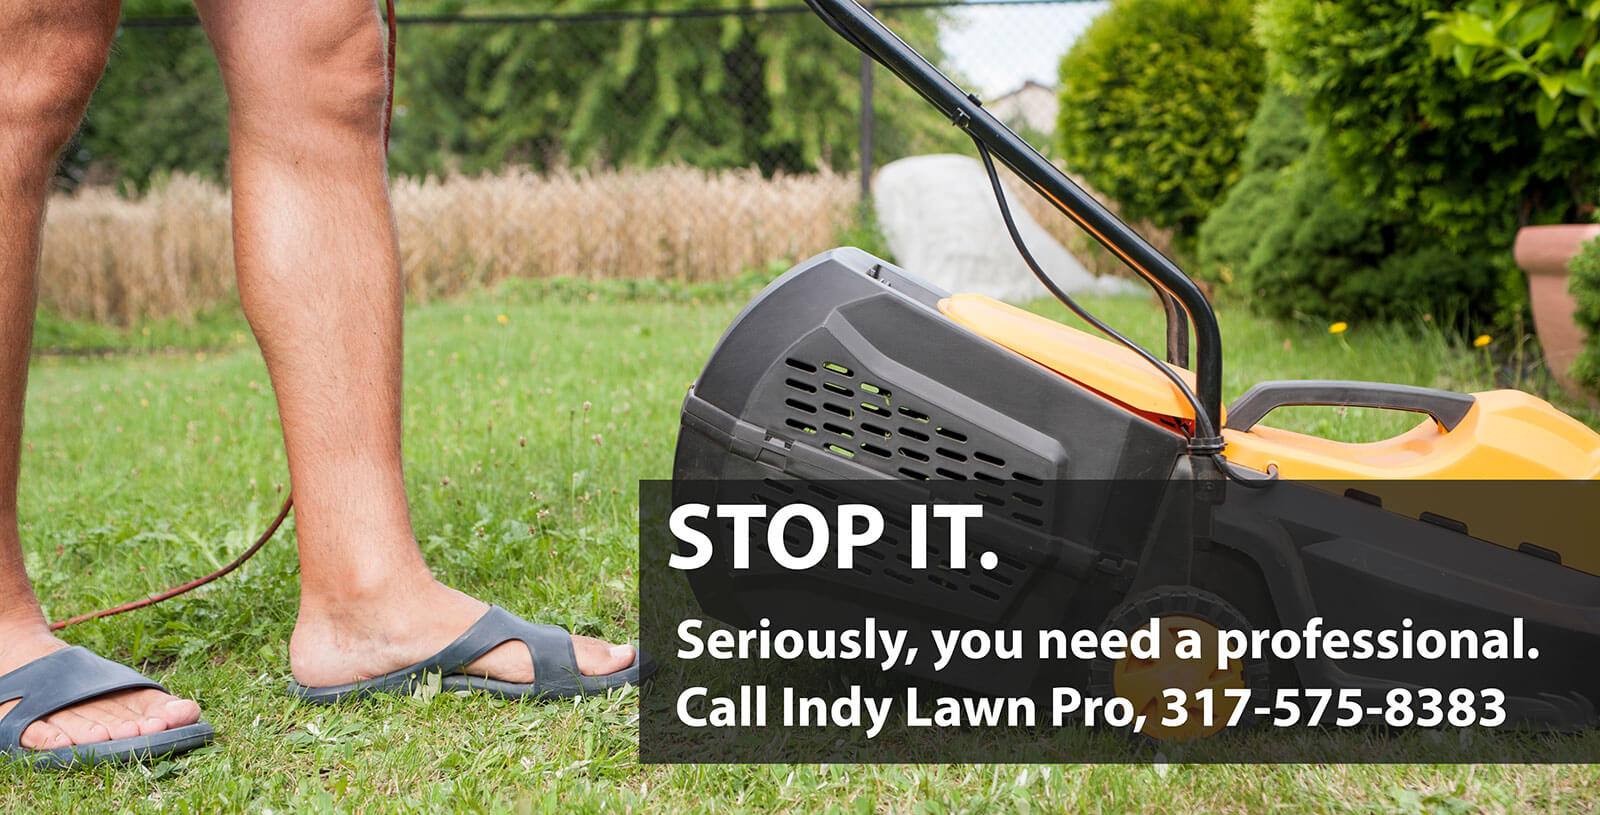 Lawn Care Service Carmel, IN | Lawn Mowing, Landscaping